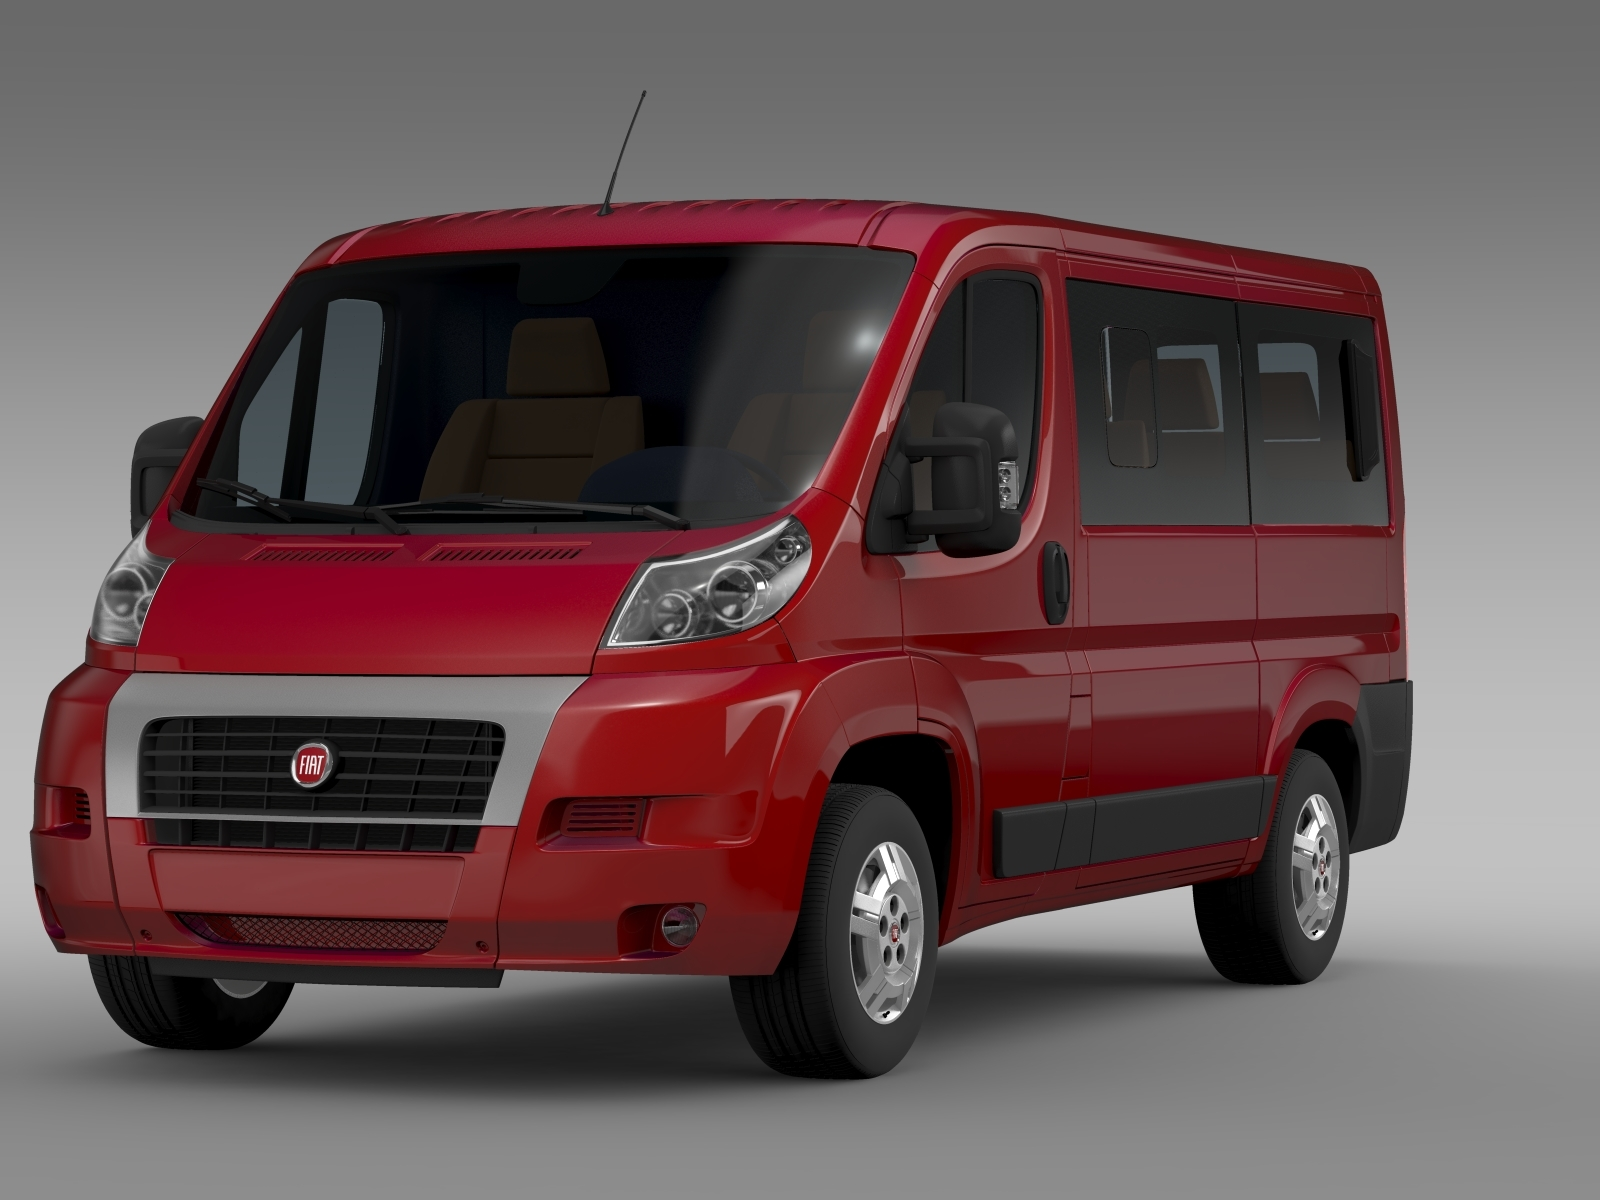 fiat ducato mini bus l1h1 2006 2014 by creator 3d 3docean. Black Bedroom Furniture Sets. Home Design Ideas